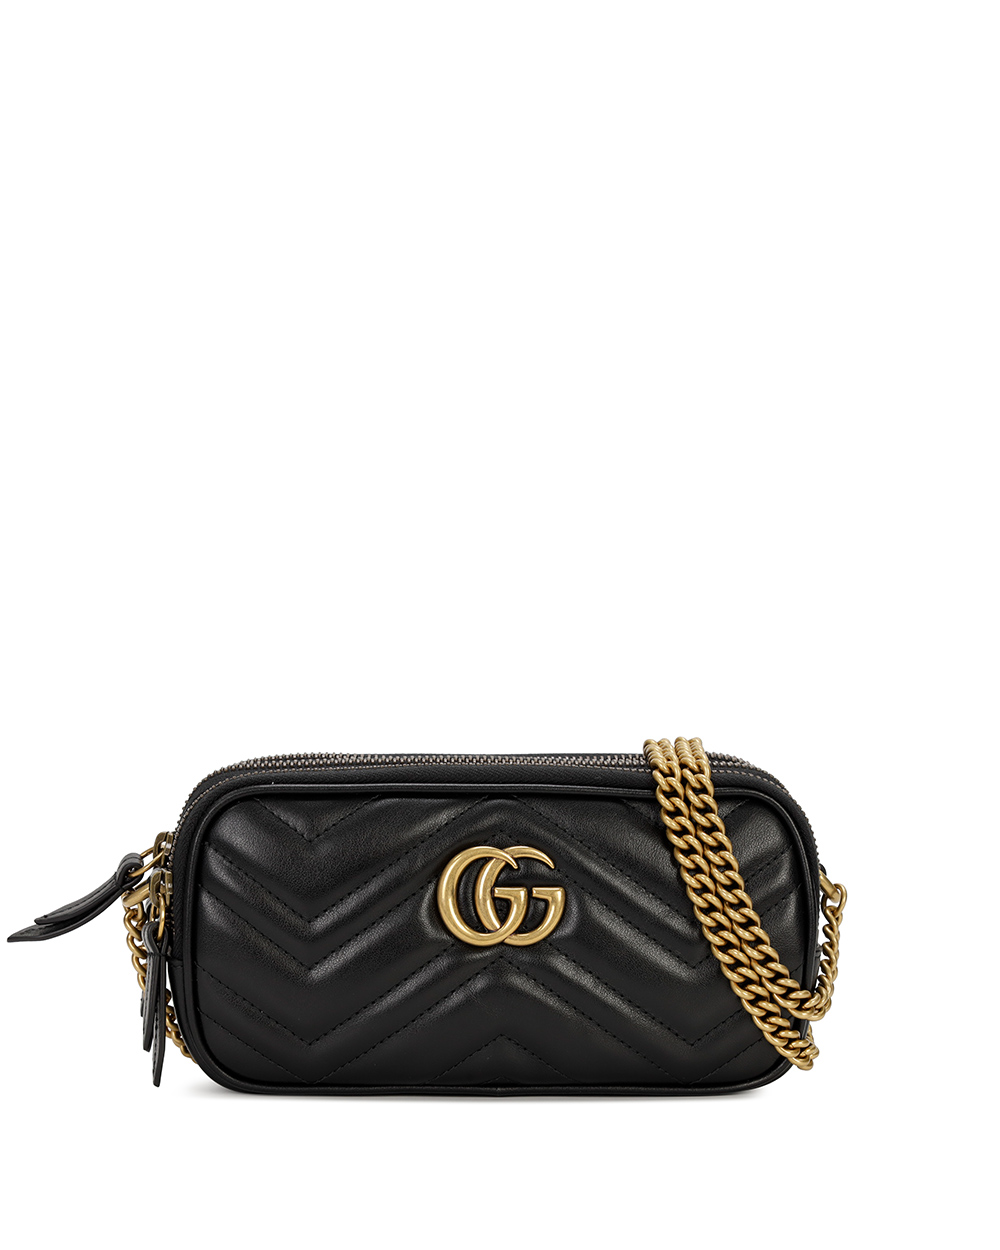 GG Marmont Mini Chain Bag